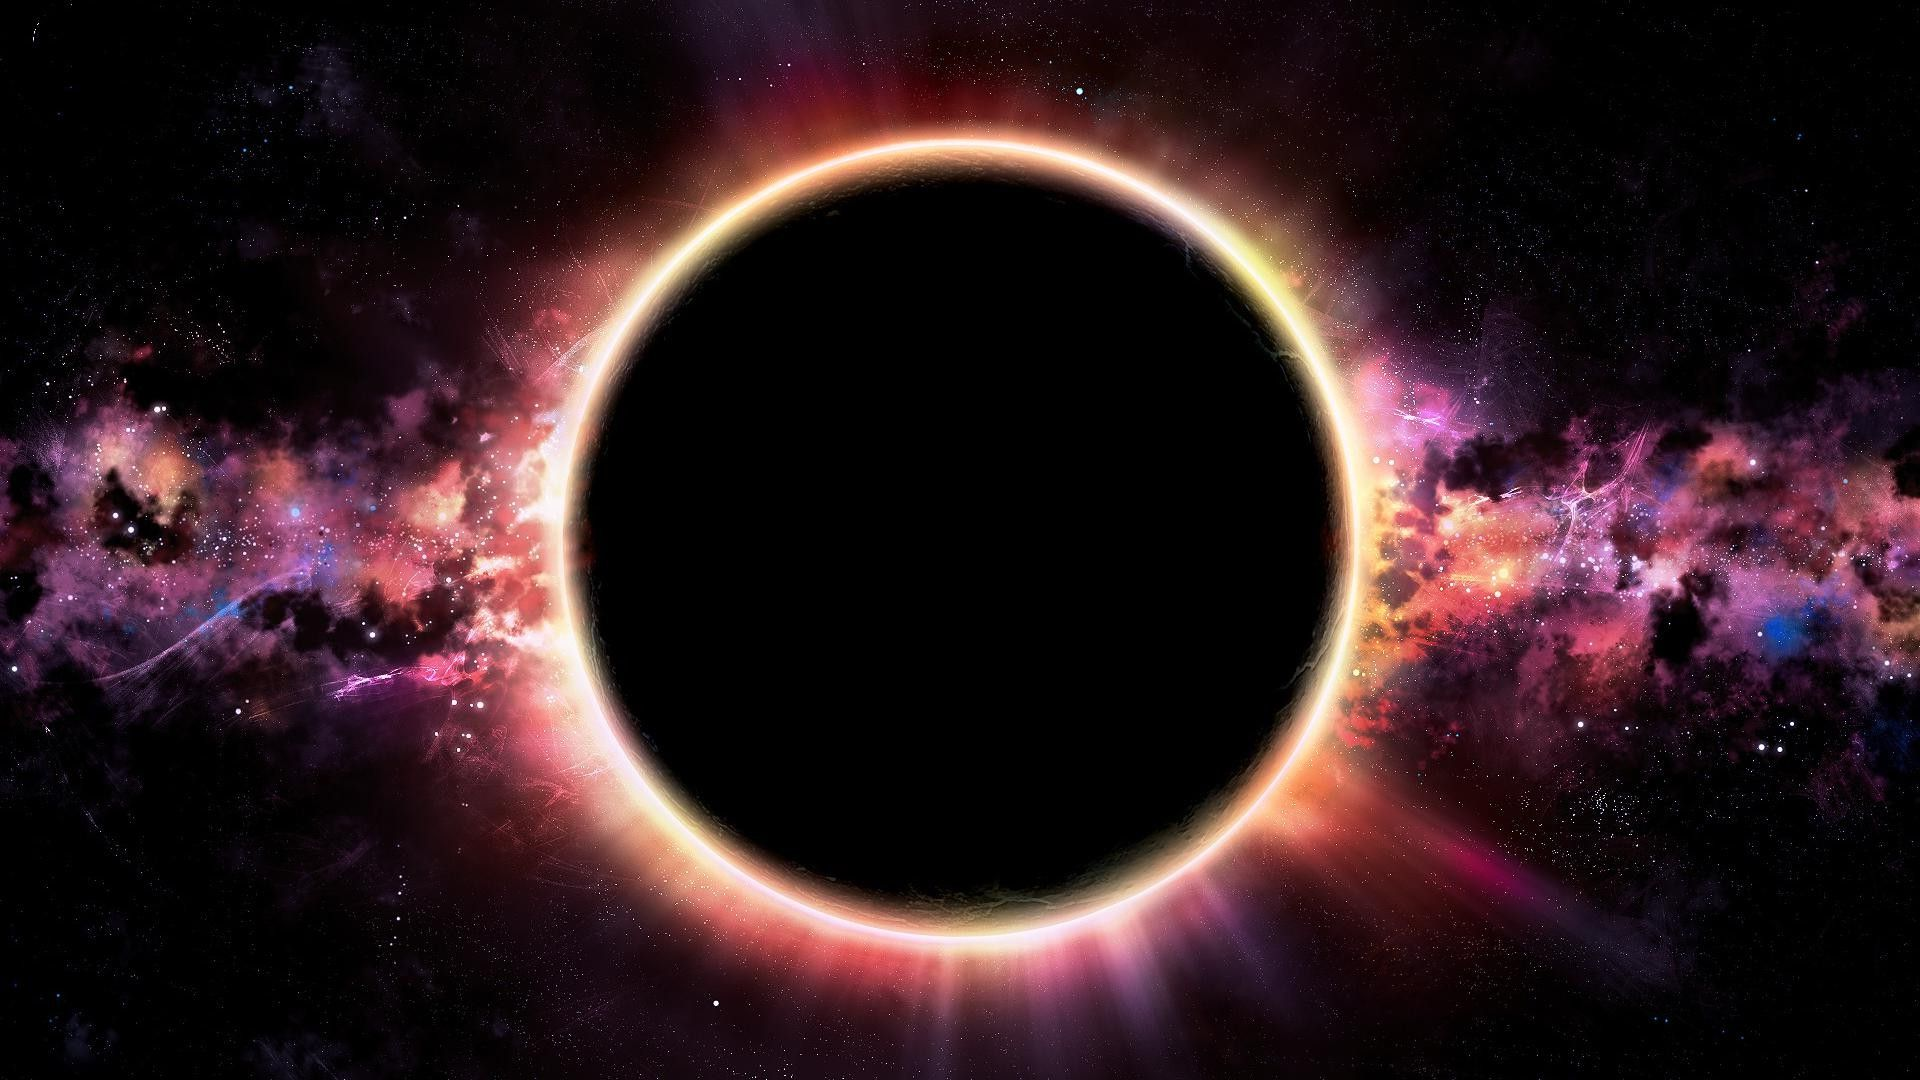 Space Eclipse Wallpapers - Top Free Space Eclipse ...